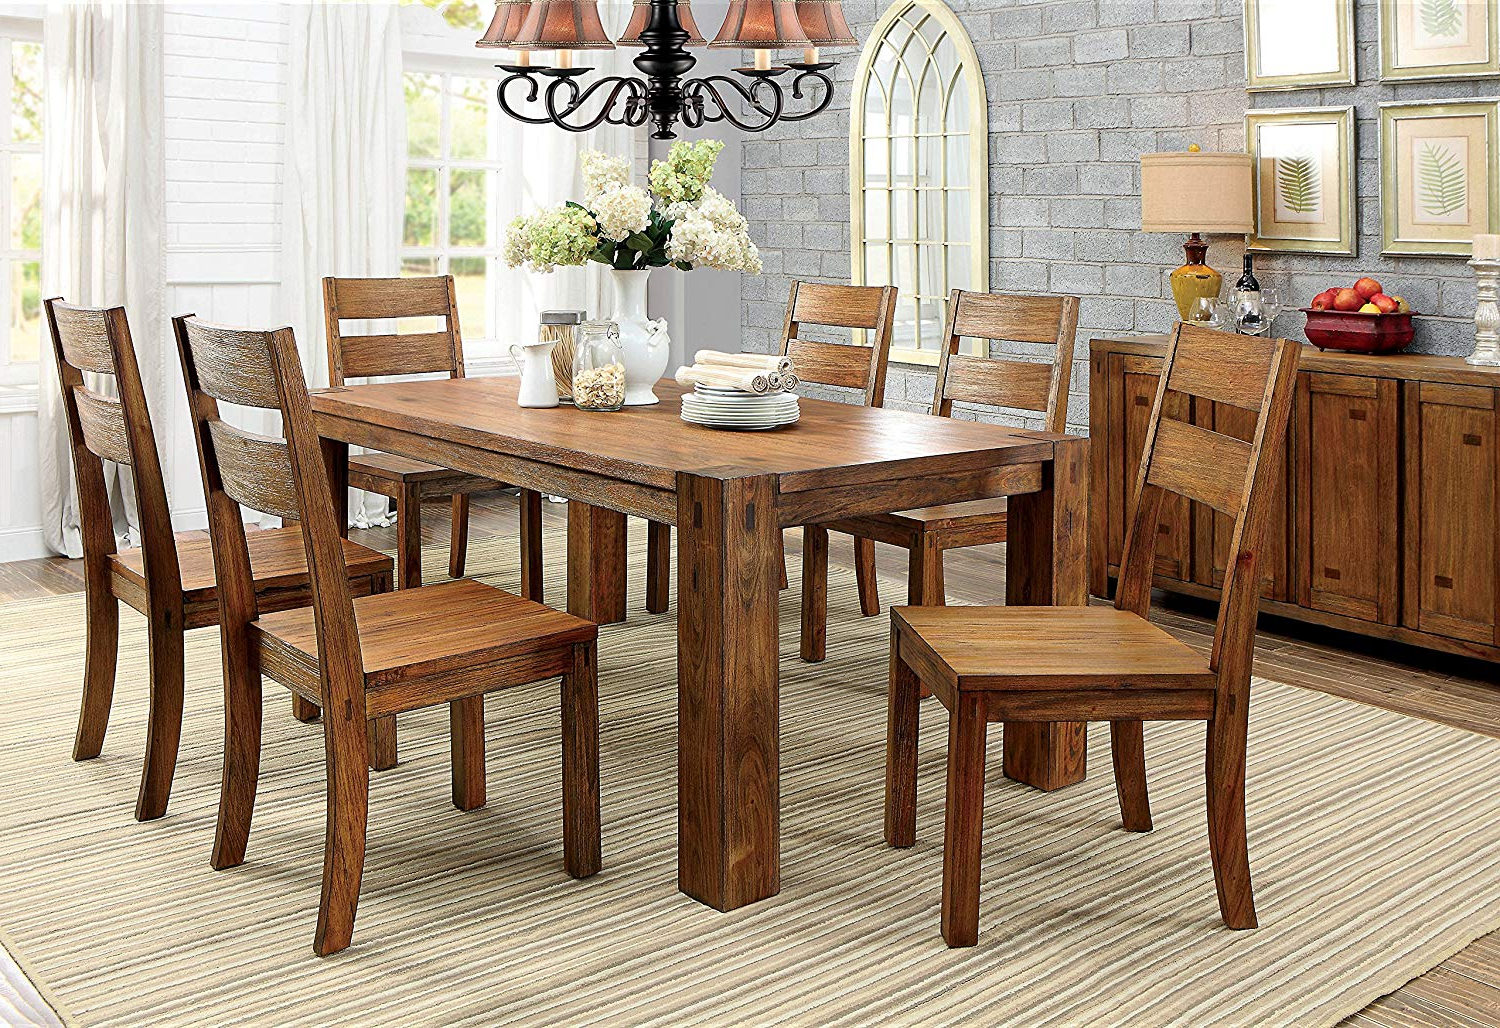 Amazon – Furniture Of America Maynard 7 Piece Wooden Dining Set For Widely Used Maynard 5 Piece Dining Sets (View 1 of 25)